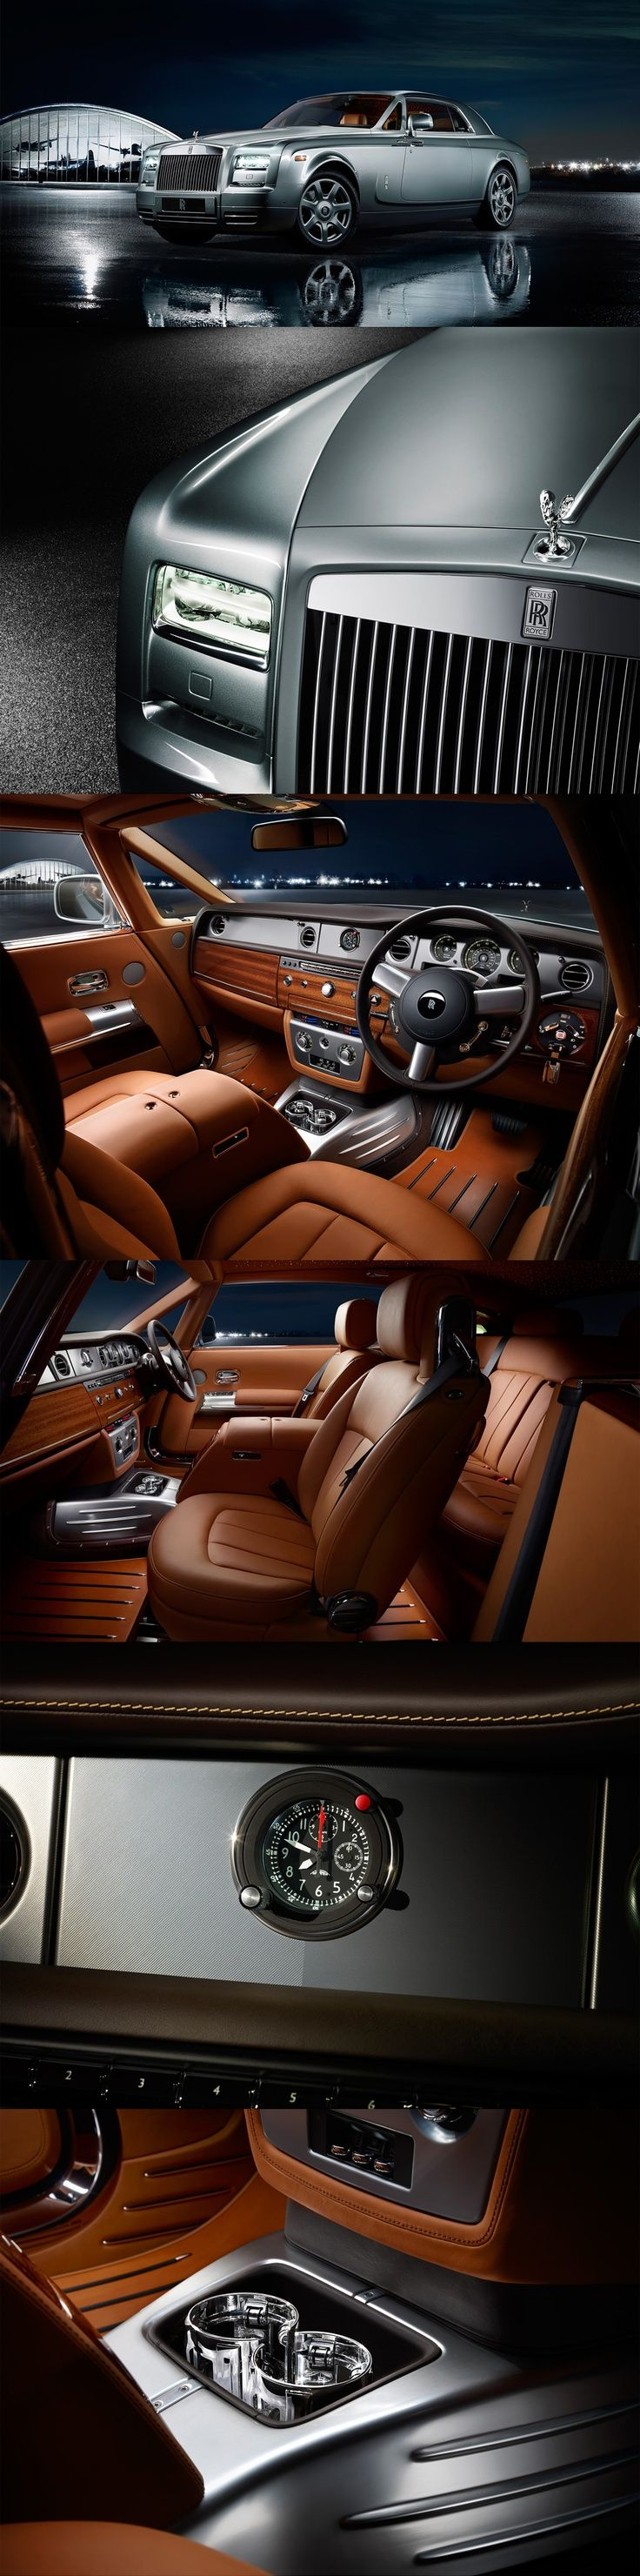 Rolls Royce Luxury Sedan Models  http://www.cars-for-sales.com/?page_id=219  #RollsRoyce #RollsRoyceForSale #Royce #RollsRoyceLuxurySedanModels www.cars-for-sales.com